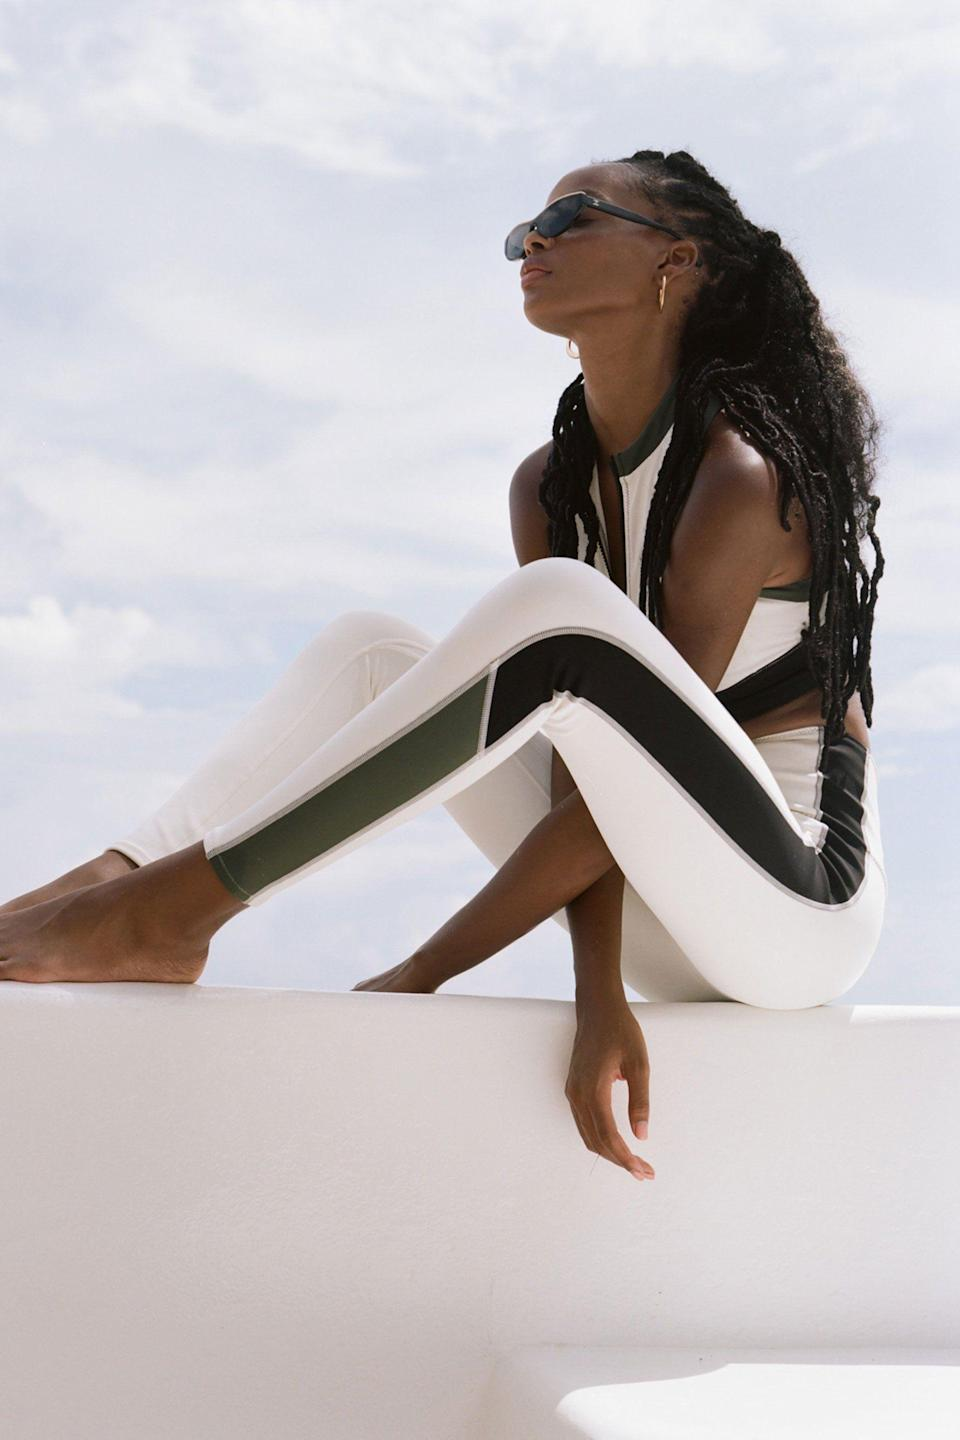 "<p class=""body-dropcap"">Want to physically elevate your workout with activewear that actually performs? The best solution is the right pair of compression leggings—those that have been proven to boost health benefits. </p><p class=""body-text"">Technologically advanced, compression leggings offer the best fit and really hold you in in all the right places, whether your workout is low impact or high intensity. You should anticipate for compression leggings to feel much tighter than traditional workout leggings, but they should not dig into your skin and feel uncomfortable. Available in a range of actual pressures, they may require trial and error to find the proper fit for your routine. Also, do a moisture test (fabric is only moisture-wicking if water evaporates quickly), meaning moisture will easily spread into the fabric so you stay cool and dry.</p><p class=""body-text"">The following revolutionary compression leggings will help you reach the highest levels of blood circulation to enhance your performance and help avoid post-muscle soreness and pain, seriously!</p>"